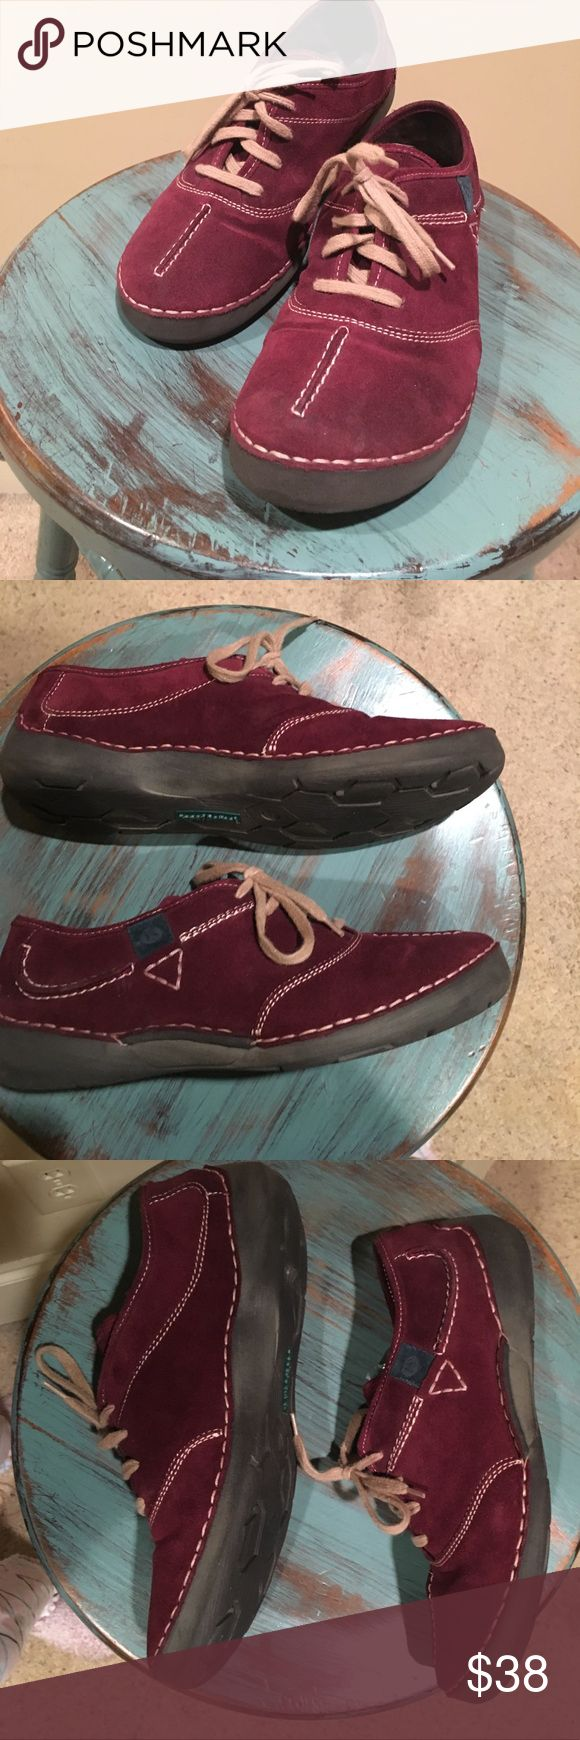 JOSEF SEIBEL WALKING SHOES 👞🕶 * Fabulous burgundy suede lace up loafers from European brand Josef Seibel  * Bought these jewels on here several months ago, but I need a bigger size * European 39 (US 8.5-9) *my loss is your gain!! * retails for 150-200$ +!! * these are preloved only by previous owner, but these will last forever ! * considering all REASONABLE offers ;-) Josef Seibel Shoes Flats & Loafers